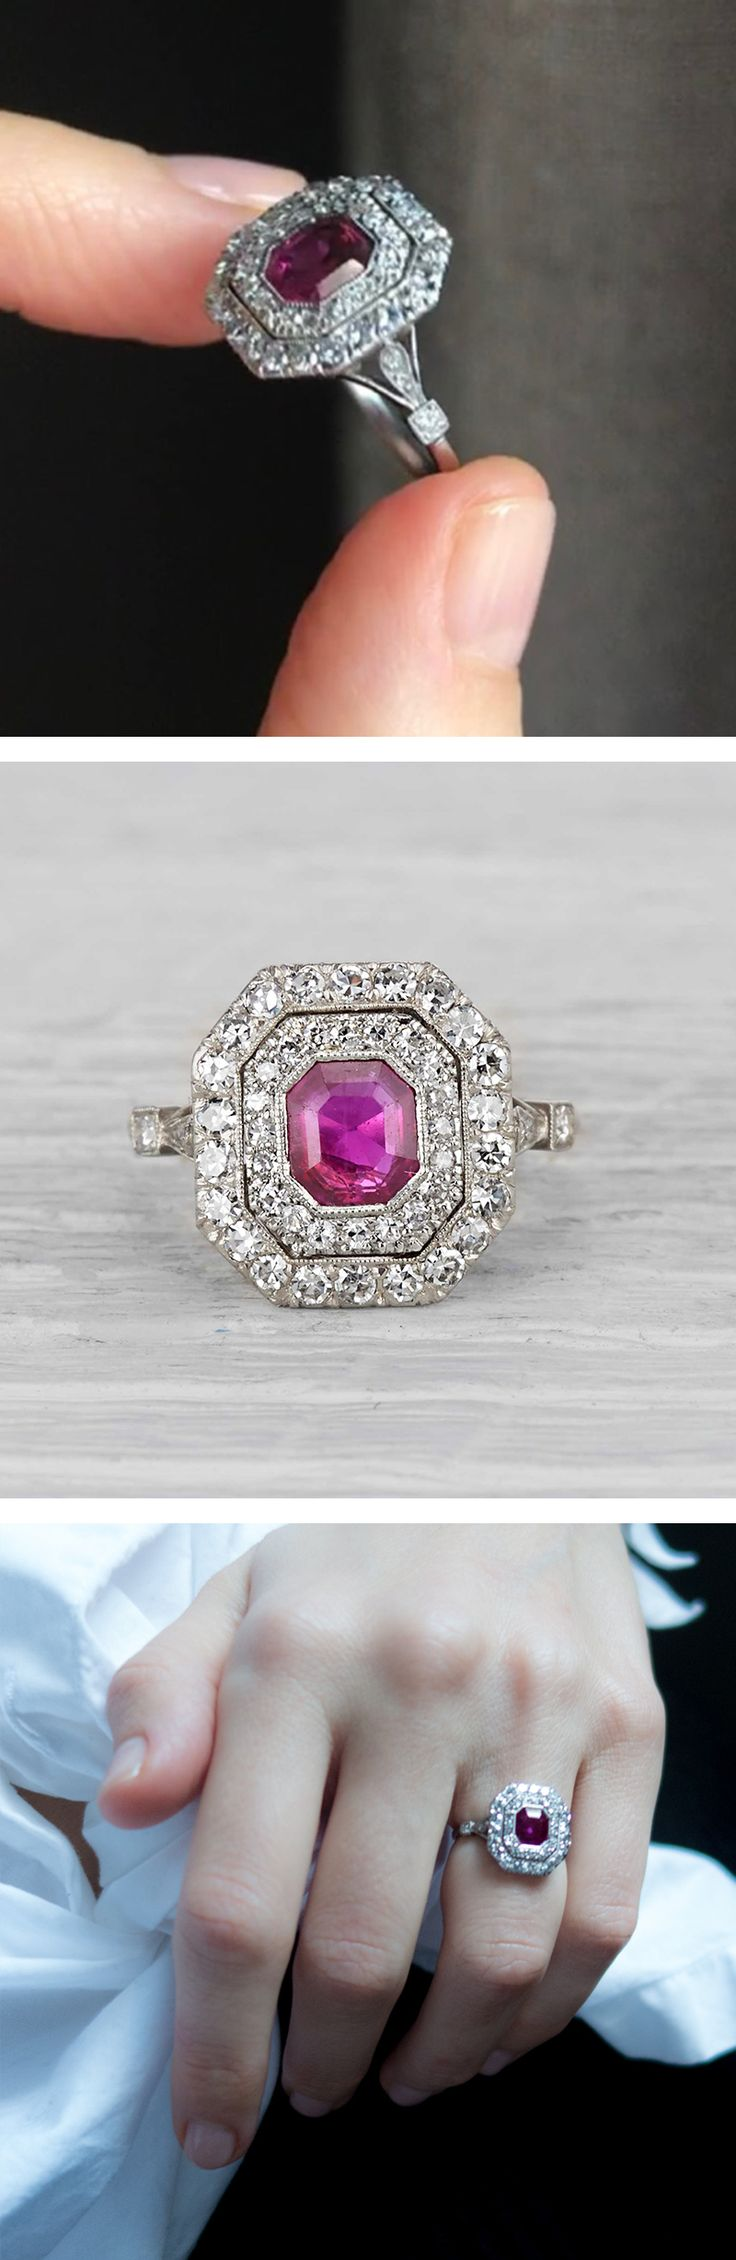 Antique Edwardian engagement ring made in platinum centered with an approximately one carat ruby accented with two rows of single cut diamonds. Circa 1915